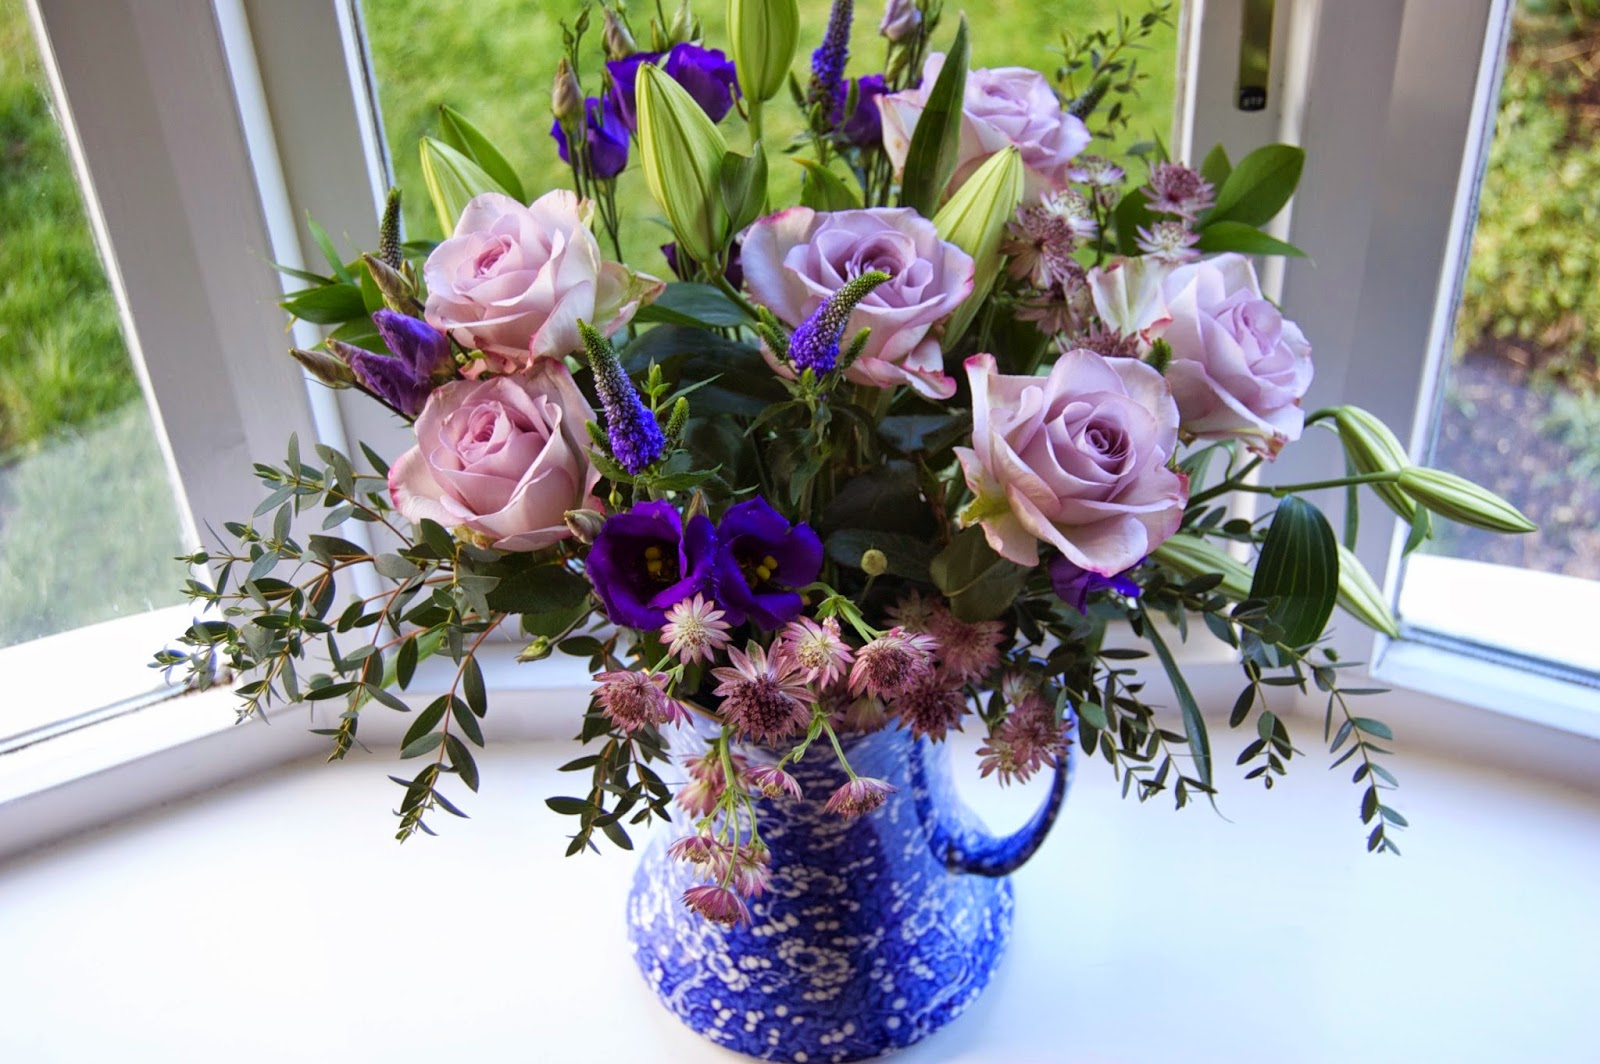 liberty bouquet appleyard london flowers mothers day